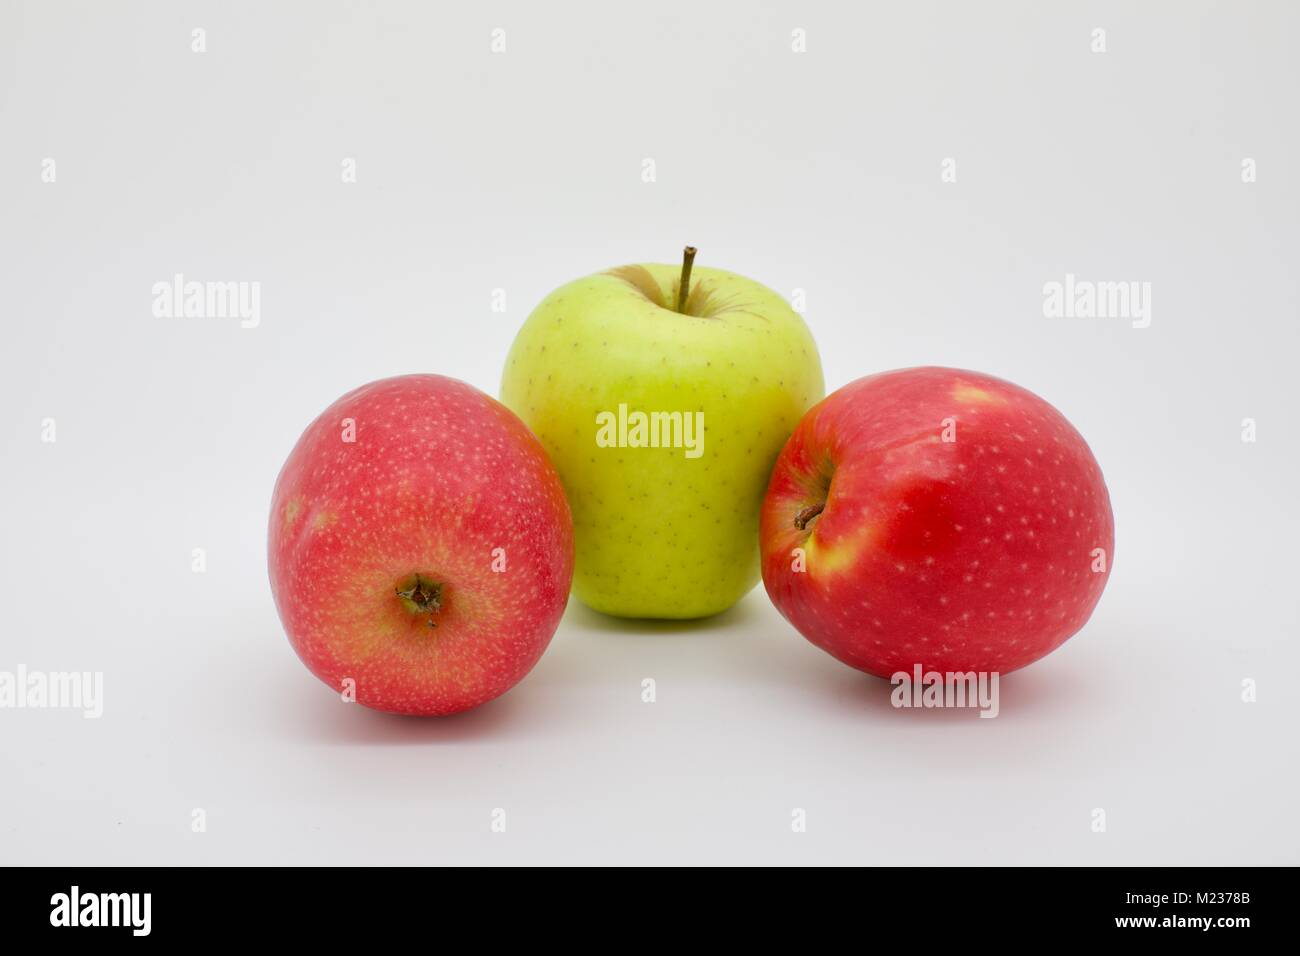 Two rosy red Jazz apples and a Golden Delicious apple in the middle on a white background - Stock Image